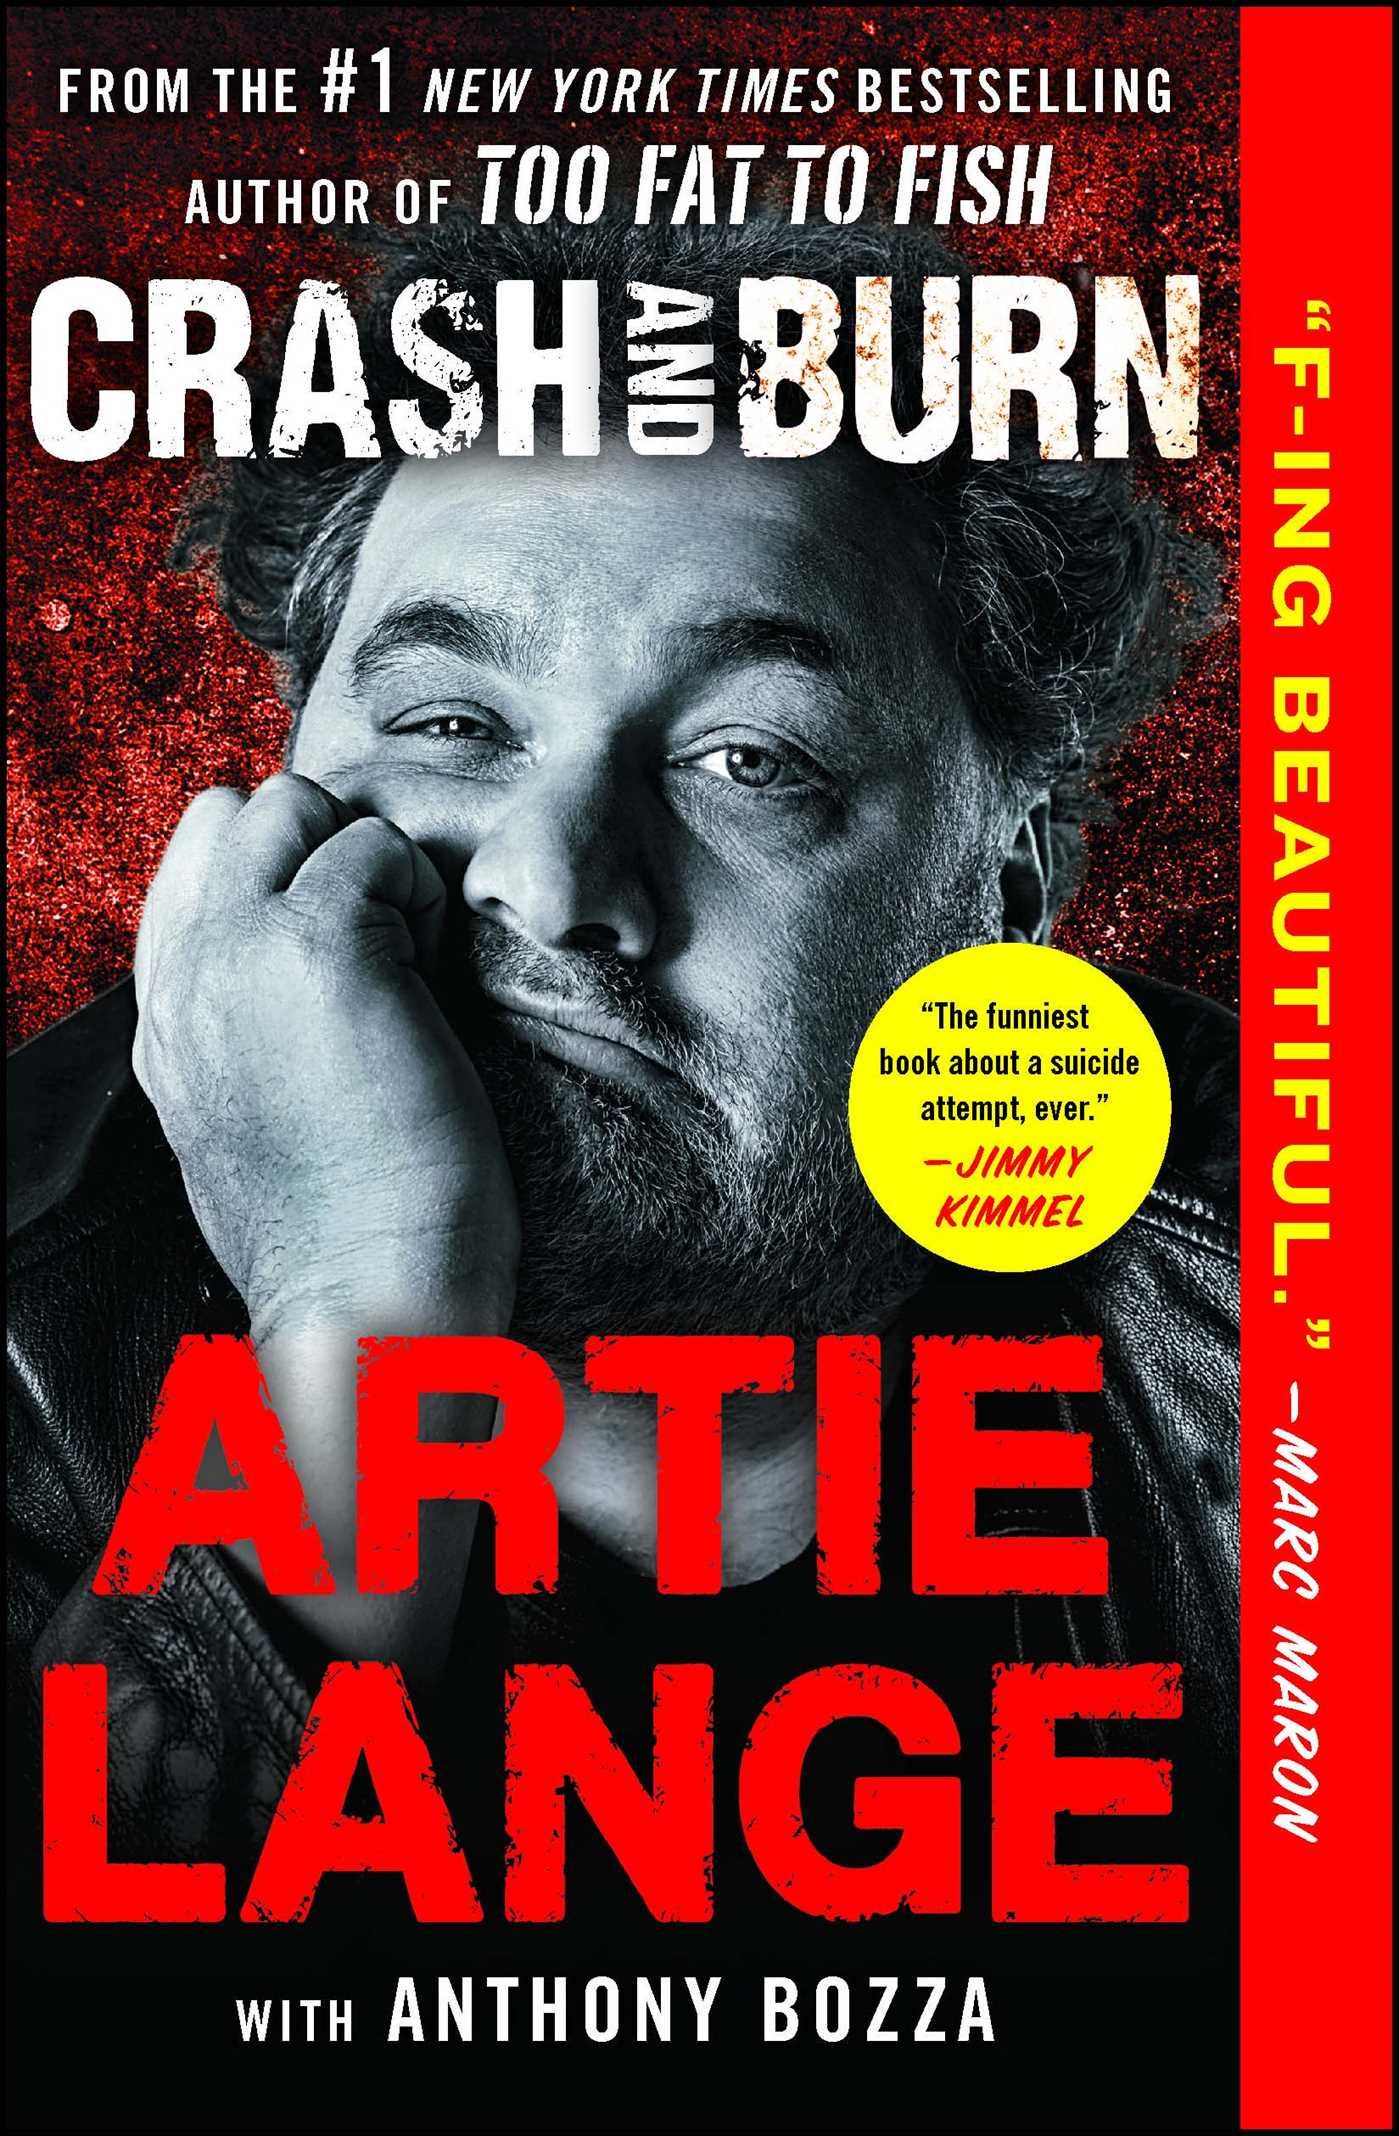 Artie Lange New York Crash And Burn Book By Artie Lange Anthony Bozza Official